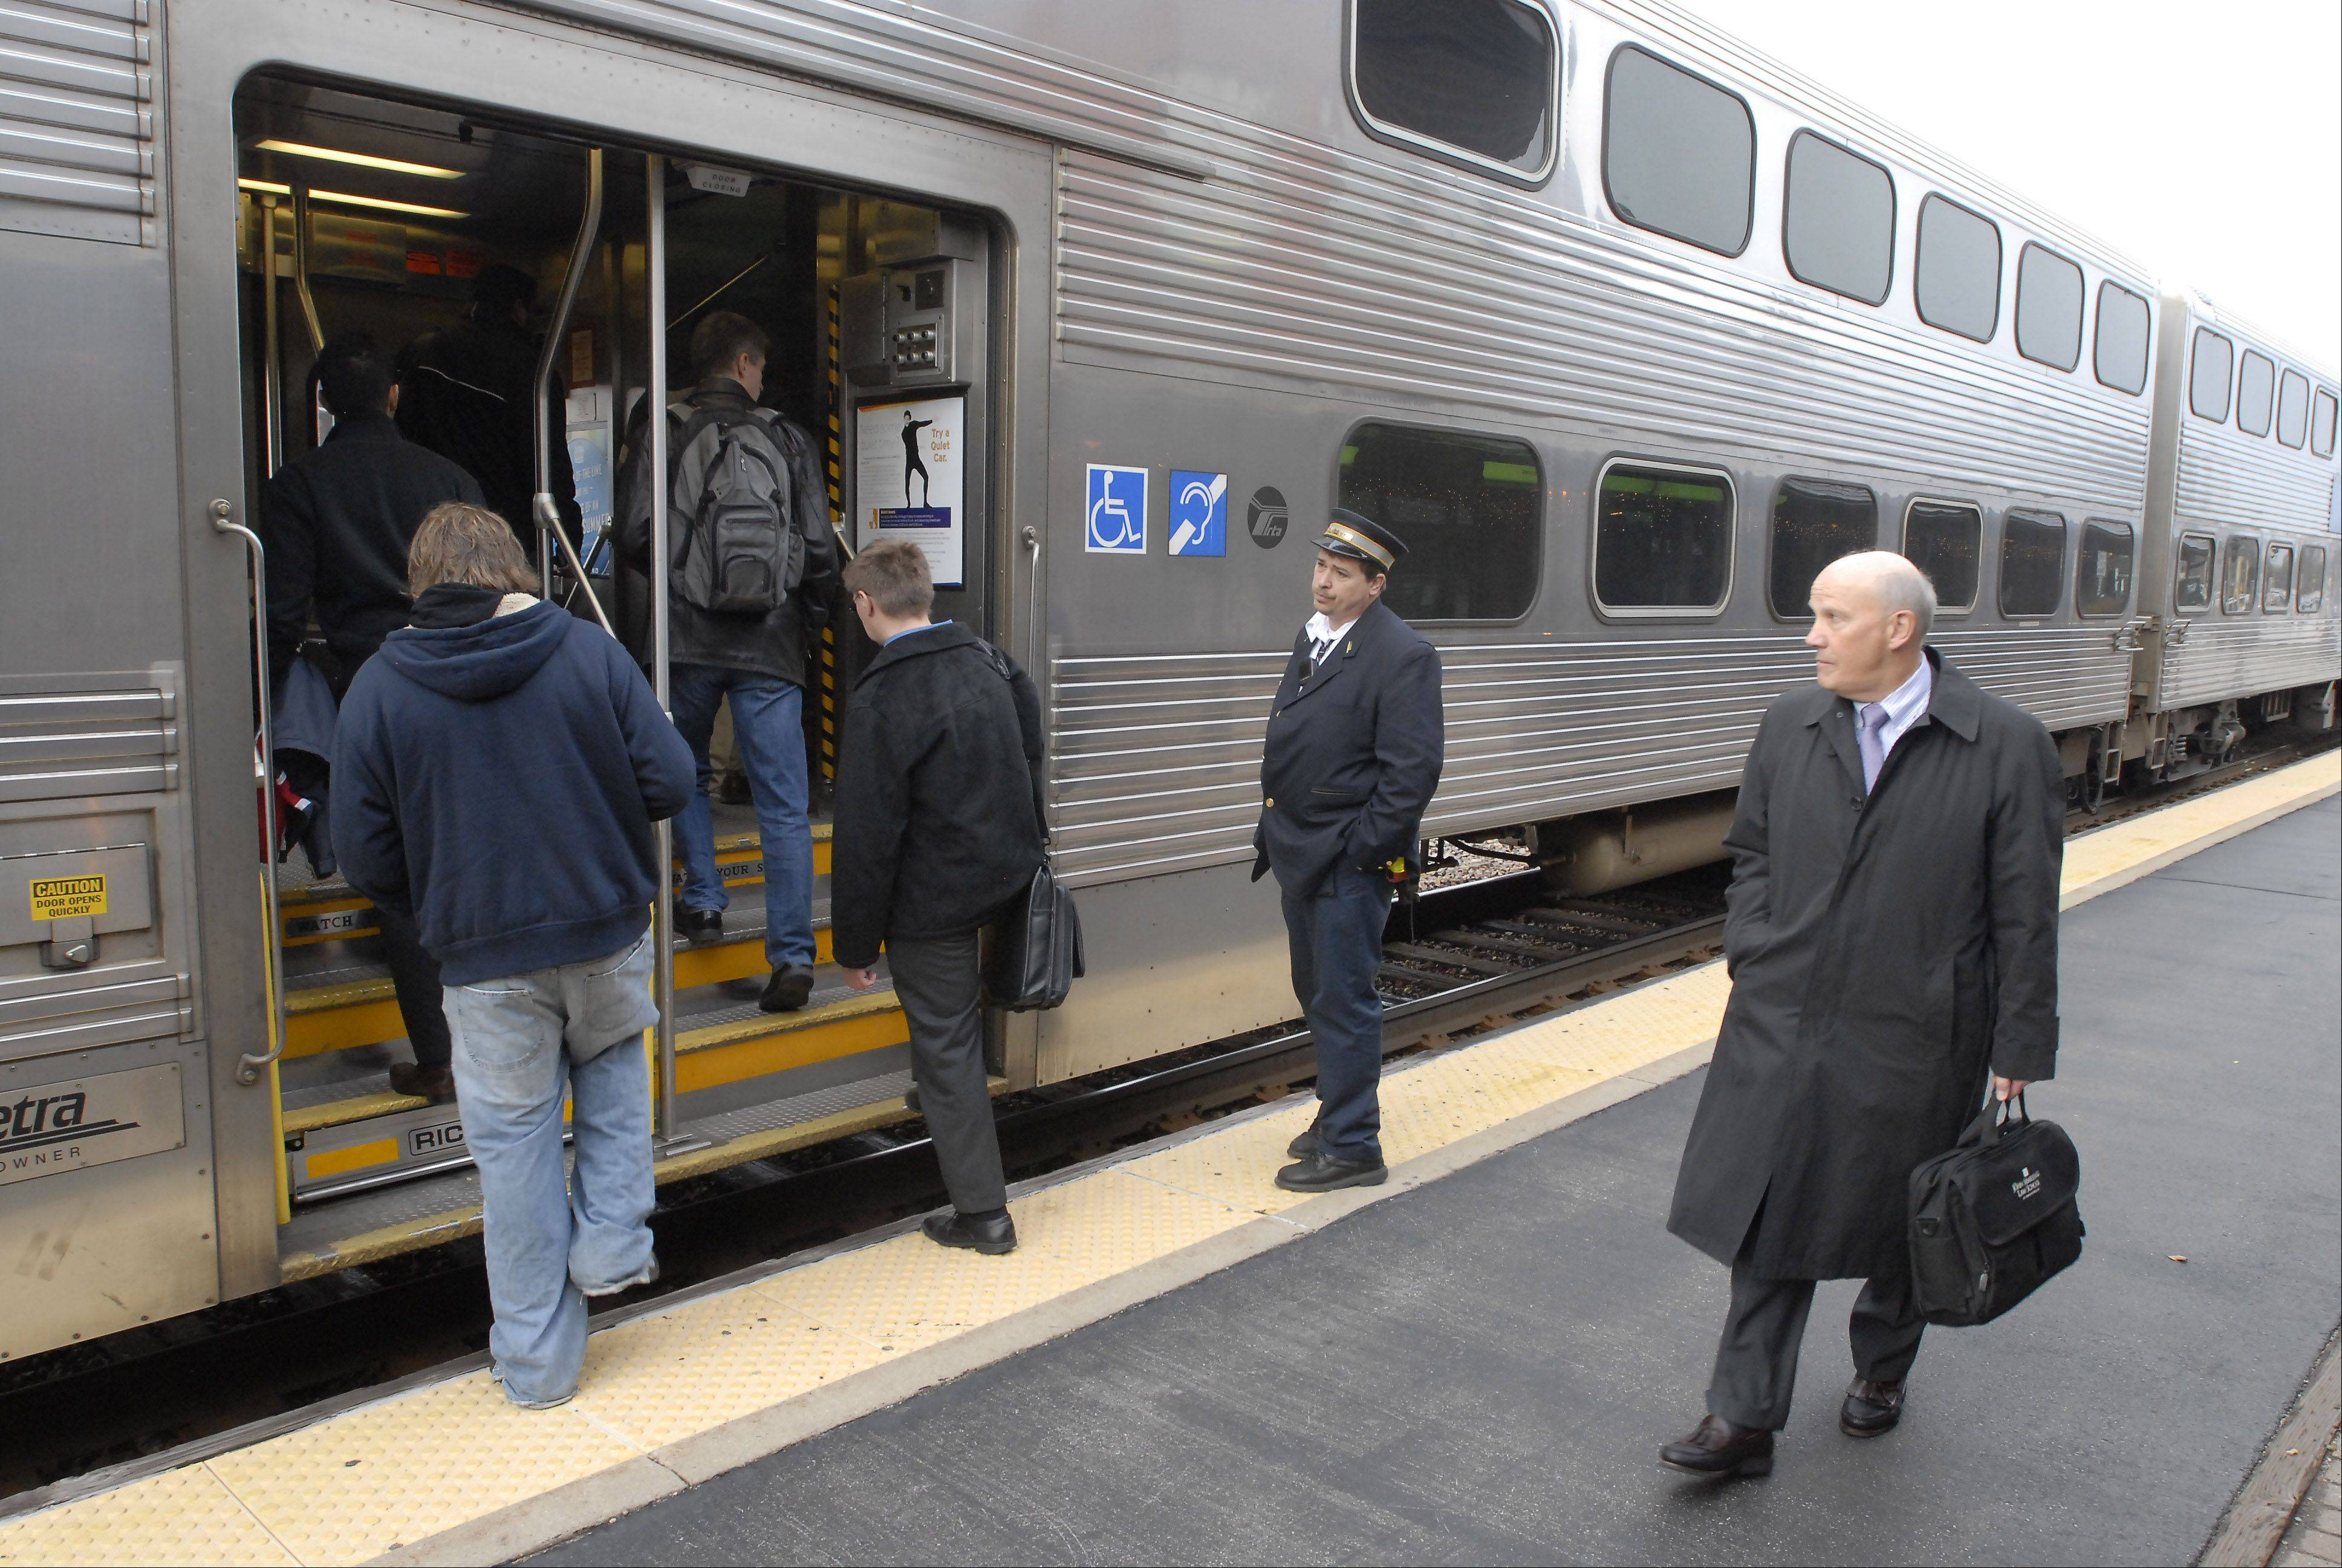 Marketing pitch urges commuters to 'Choose Metra'